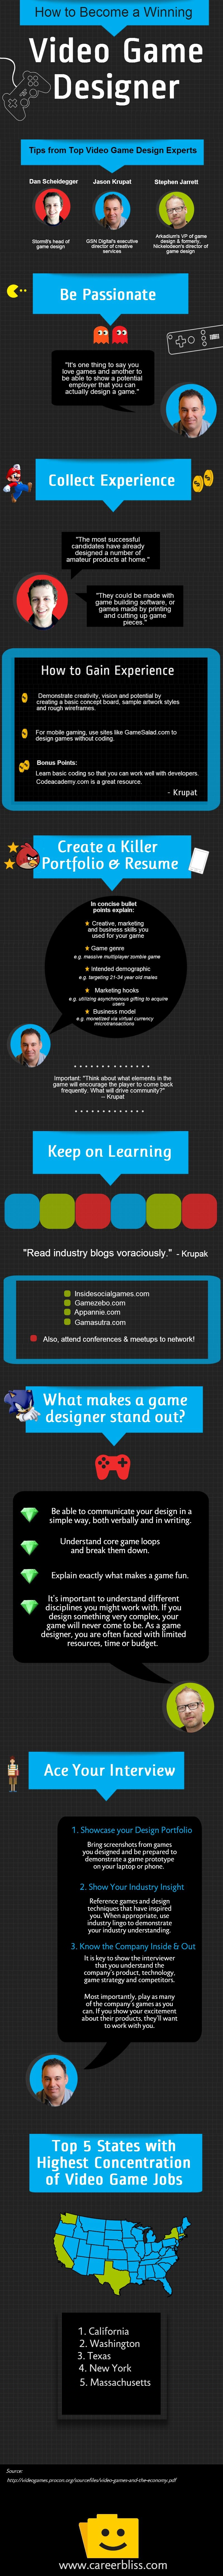 How To Become A Winning Video Game Designer Infographic Game Design Video Game Design Video Game Jobs